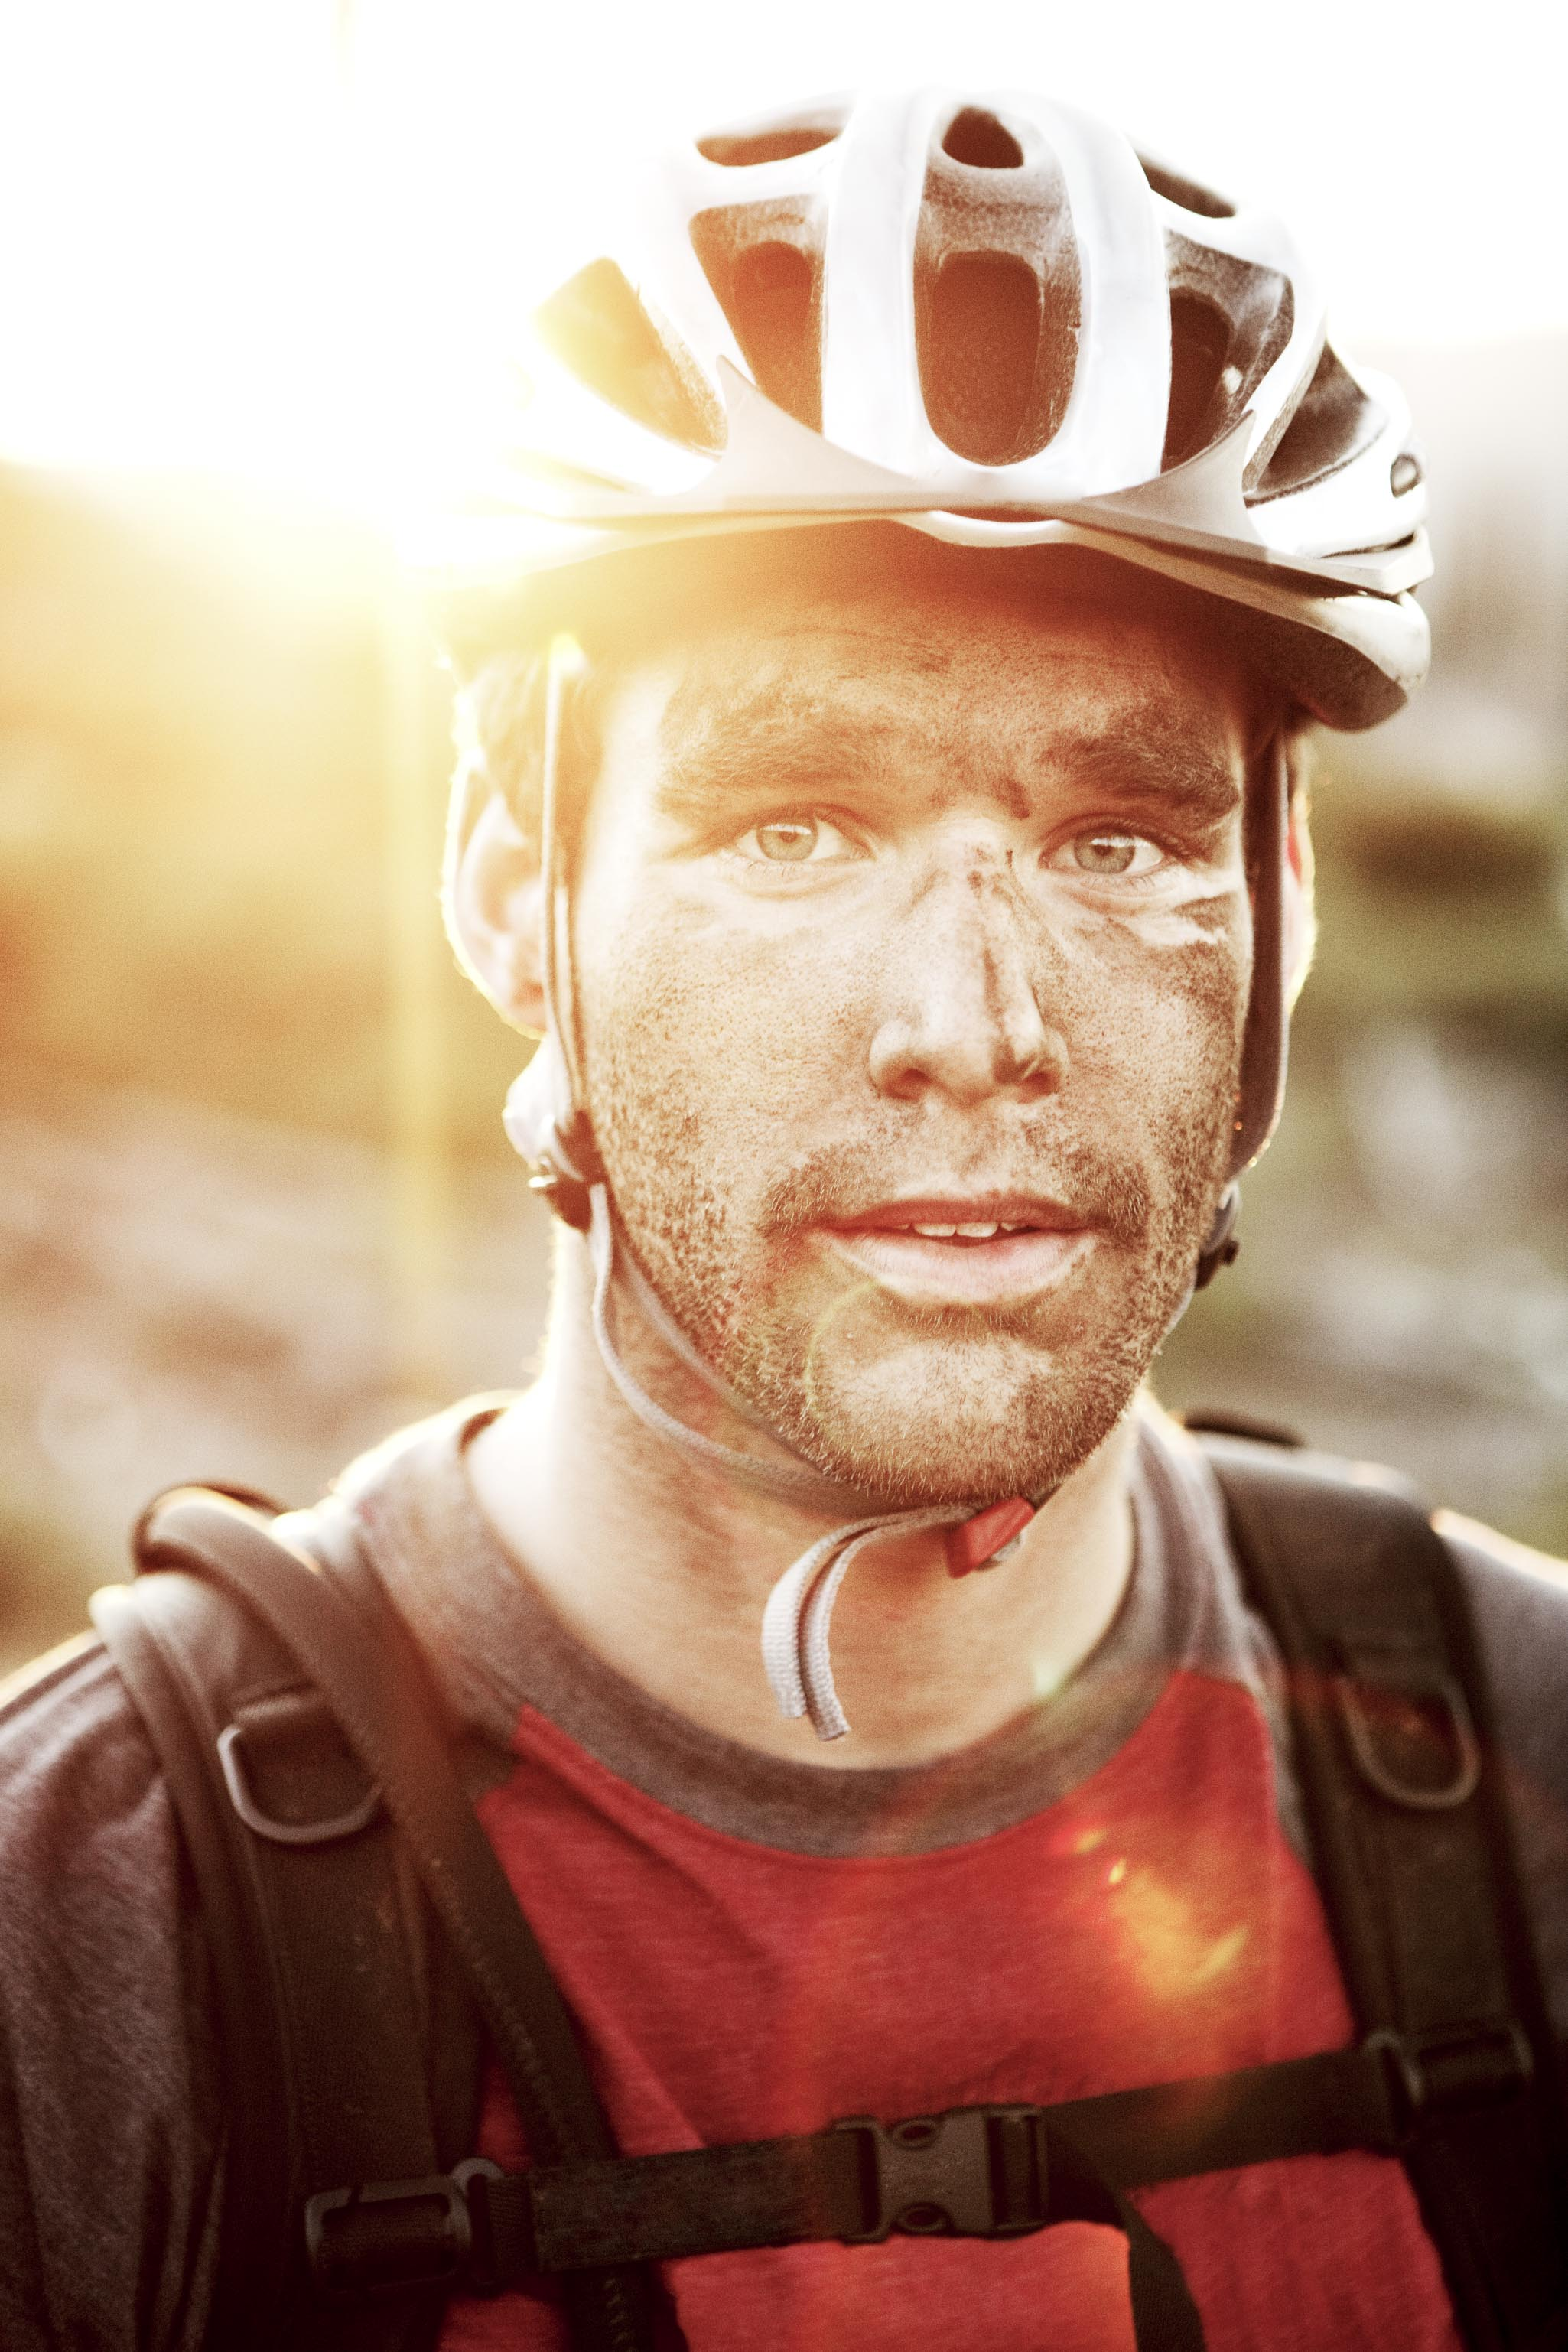 Mountain Bike Portrait